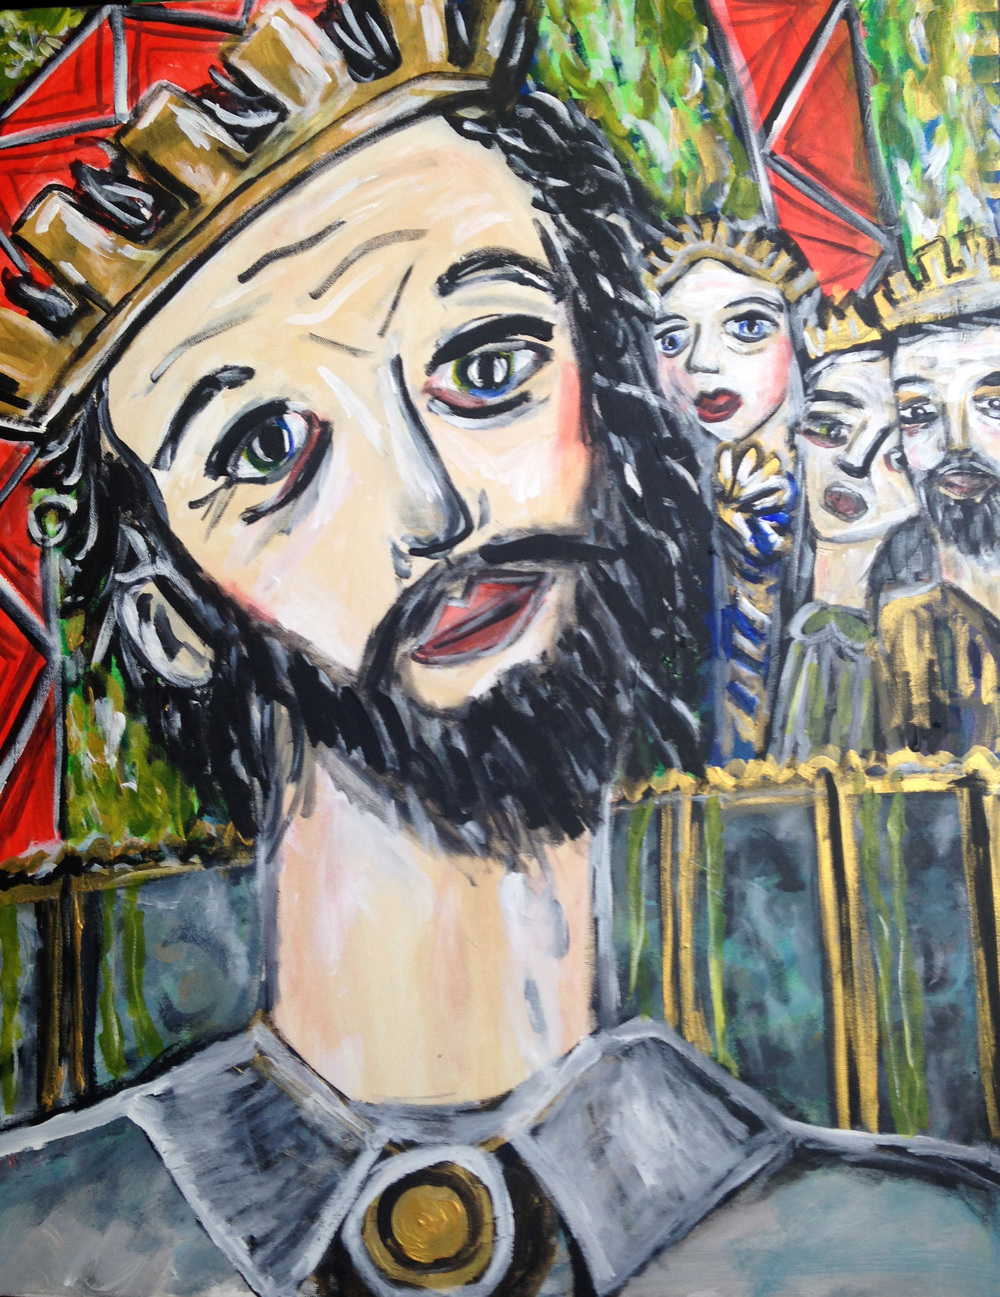 The Forgotten King, 2014